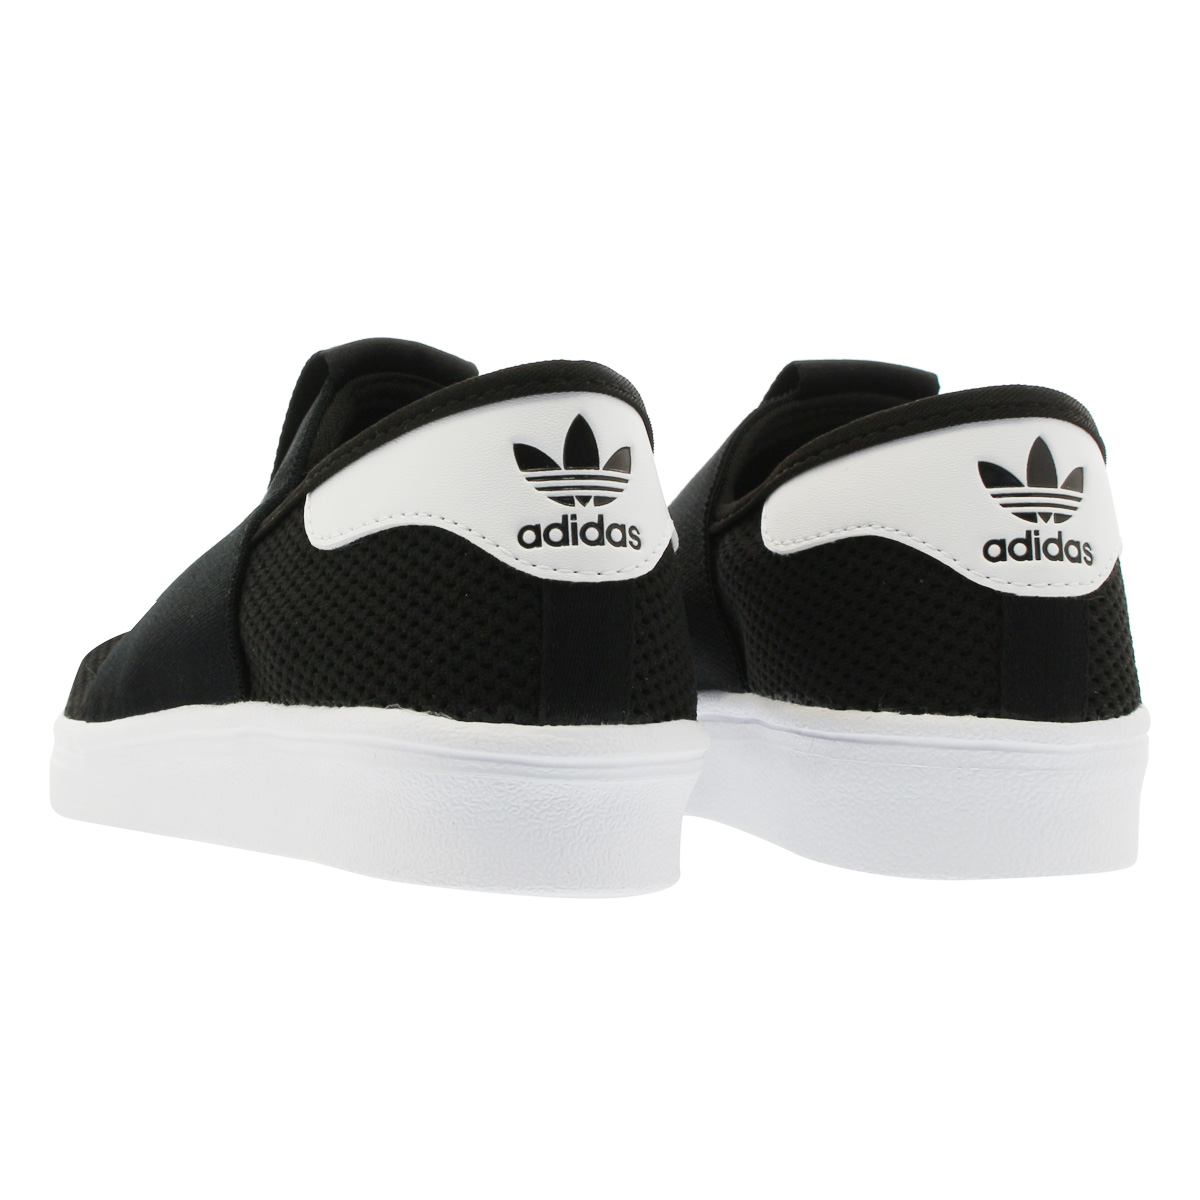 adidas SUPER STAR SMR 360 C Adidas's superstar SMR 360 C CORE BLACK/RUNNING  WHITE